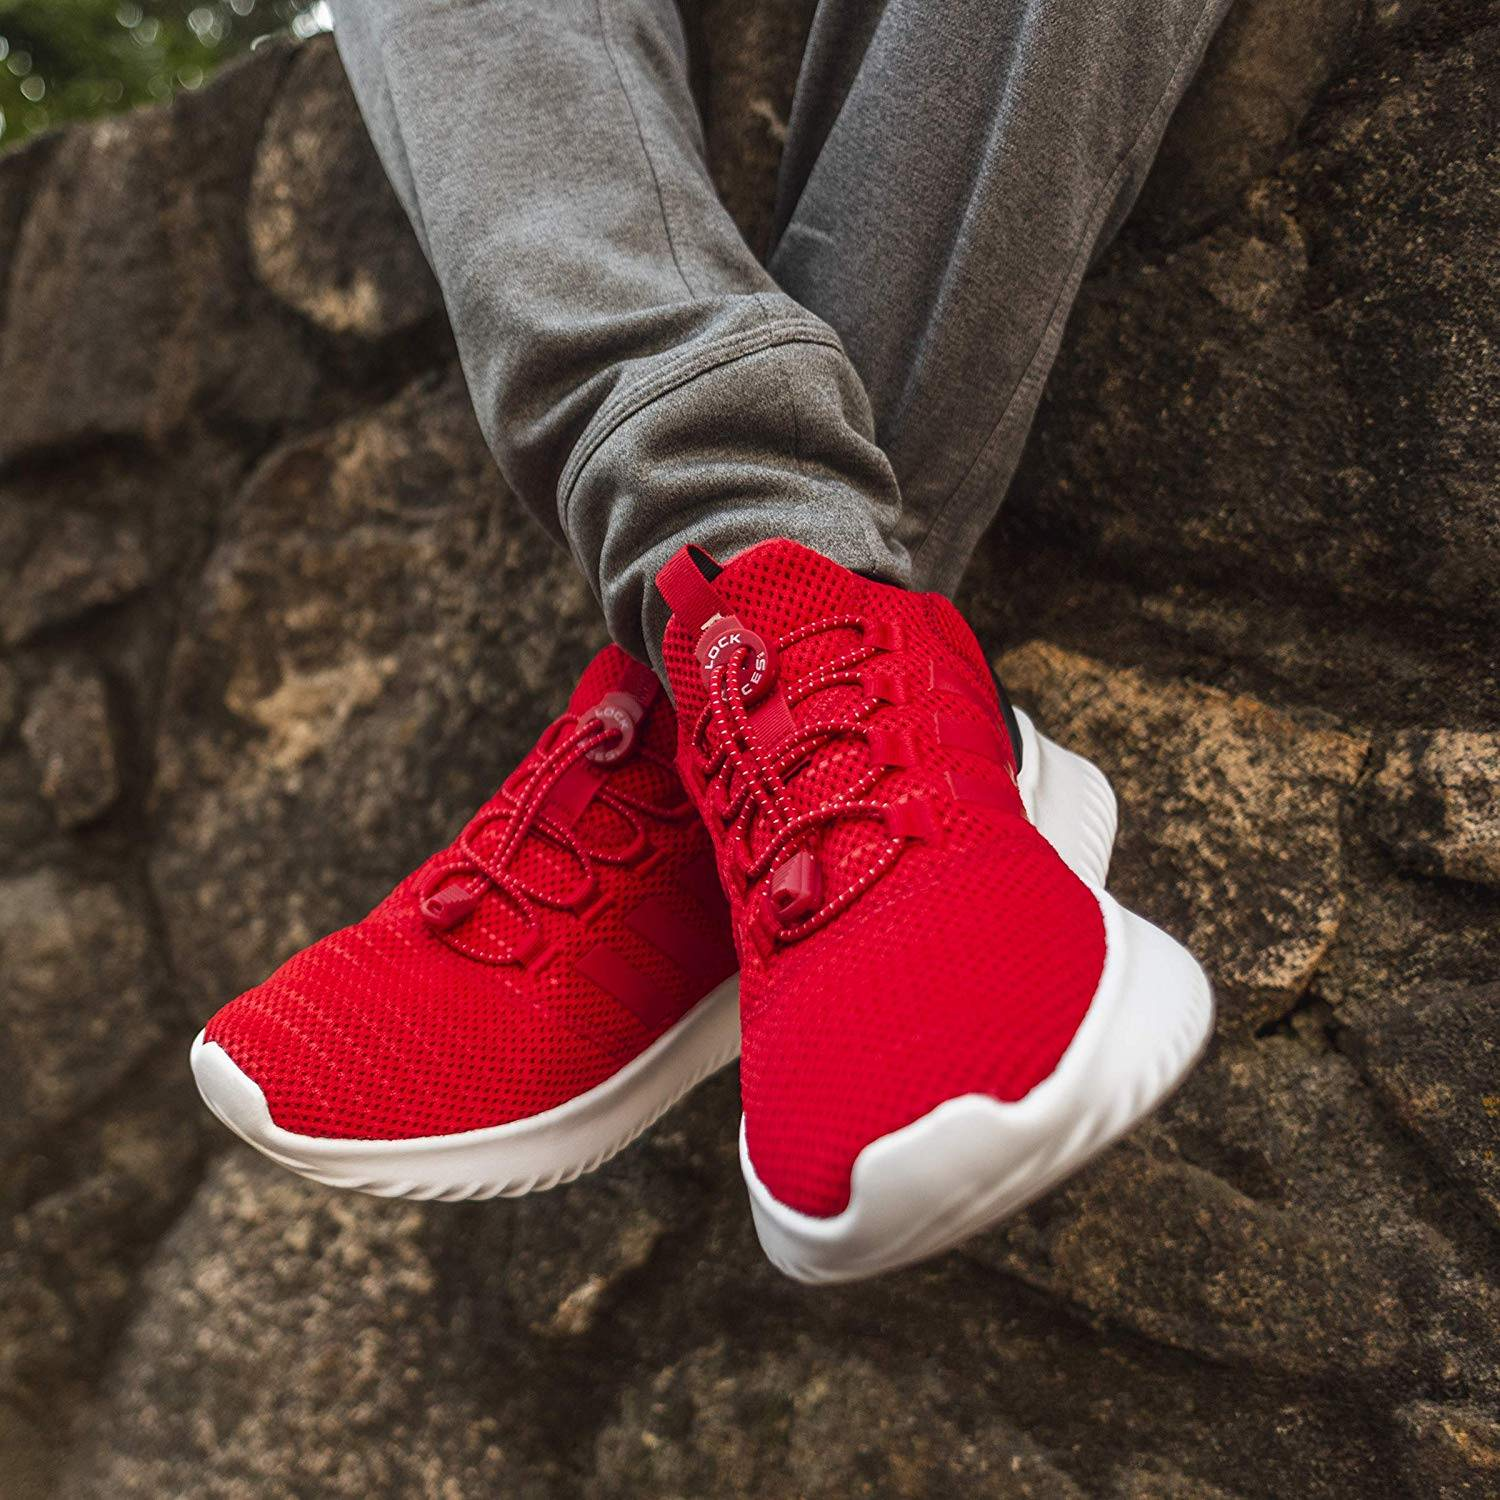 bright red shoes with red elastic lock laces